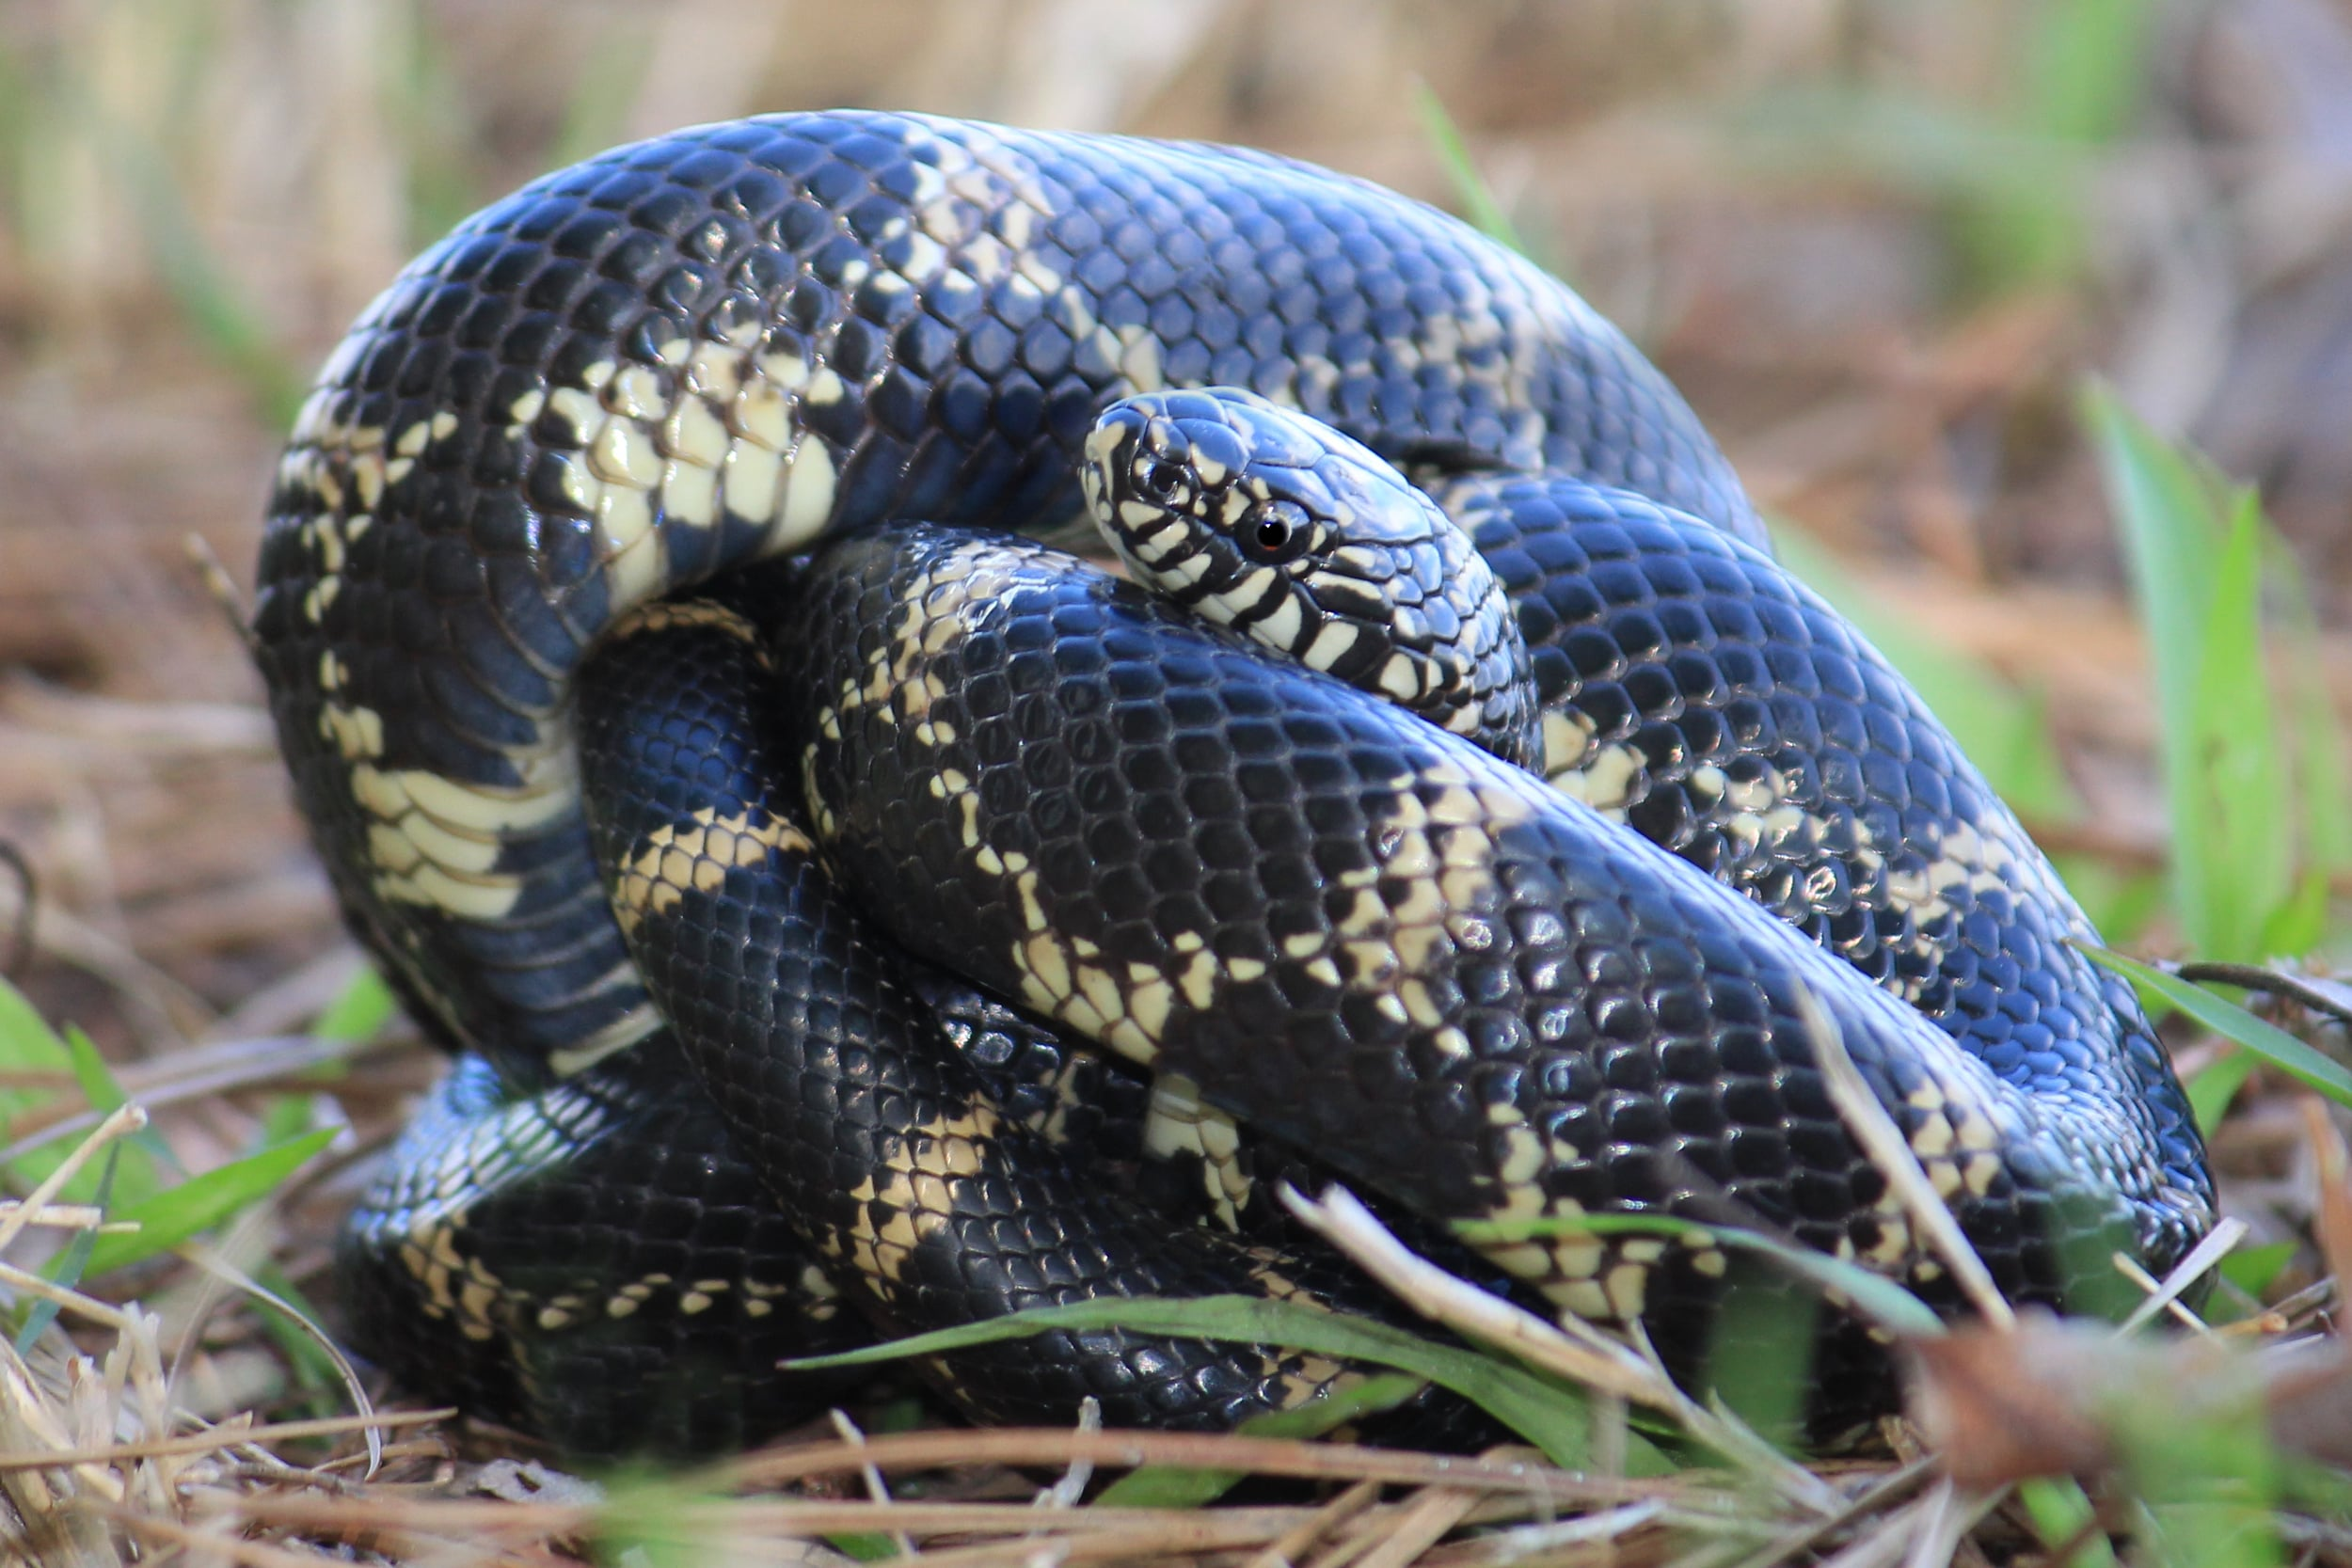 Eastern Kingsnake - This individual was walked up on Lily's trip to VA/NC.